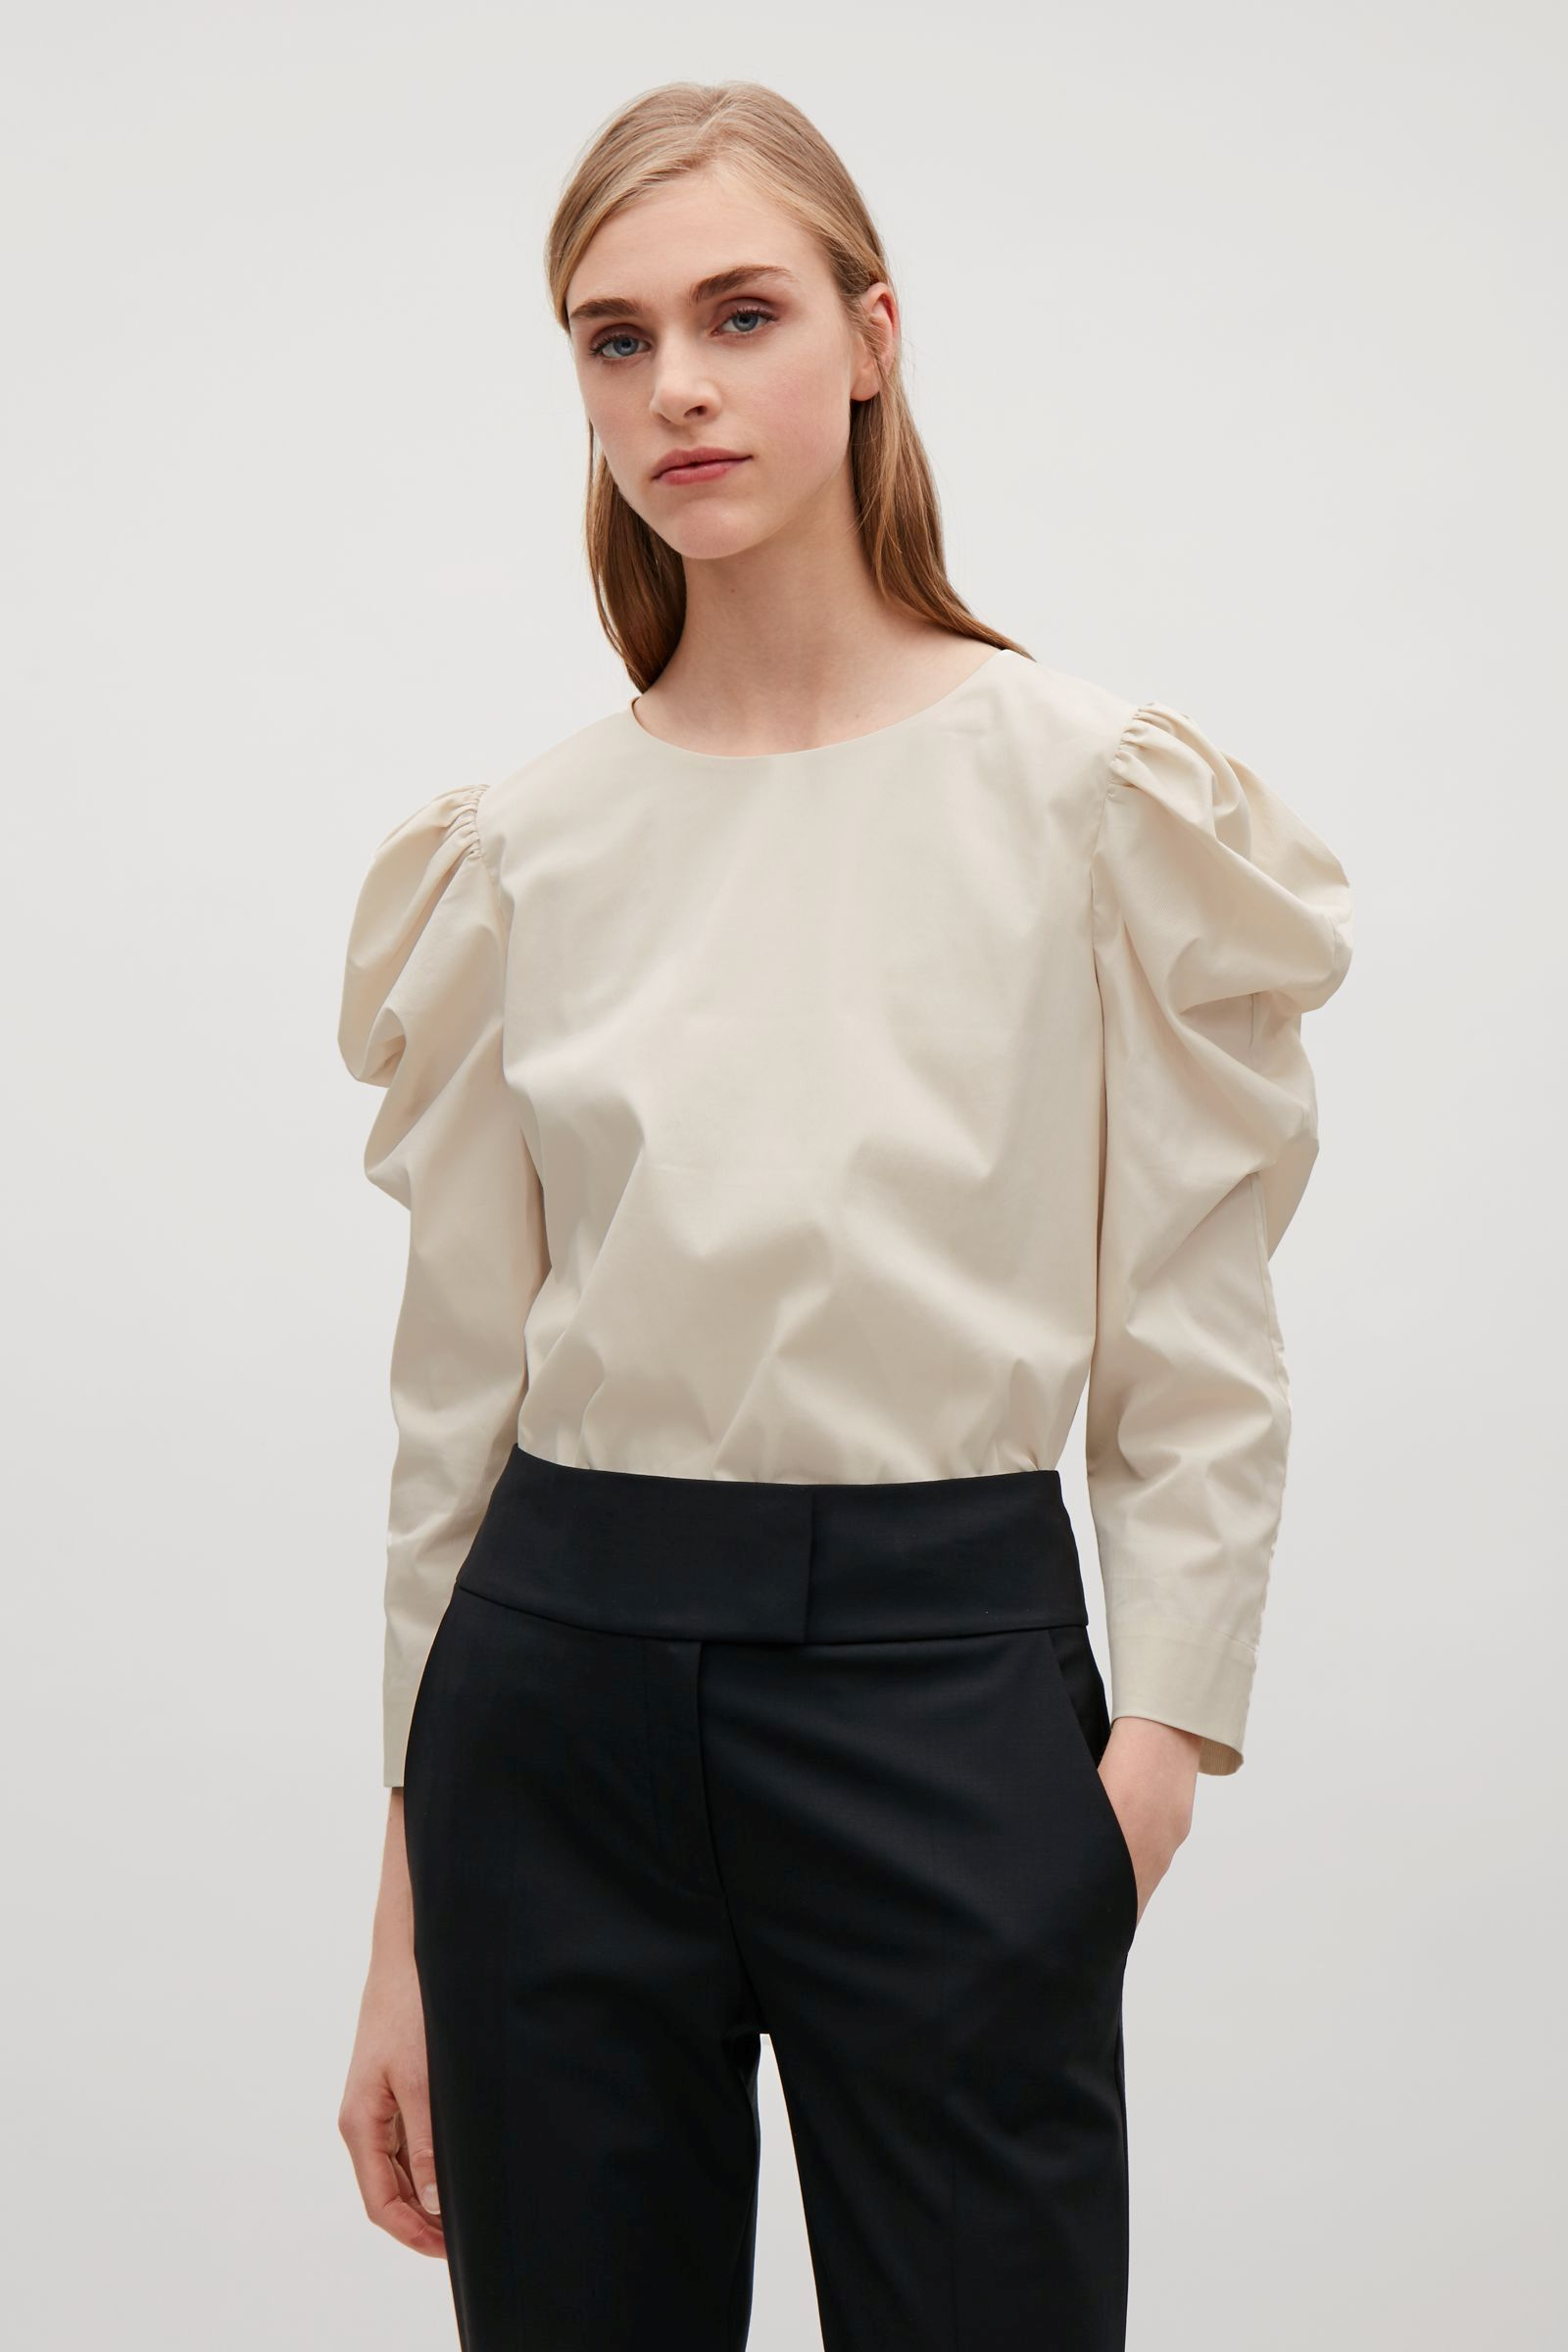 06997b8eea94 COS image 2 of Blouse with structured sleeves in Ivory | COS TOPS ...